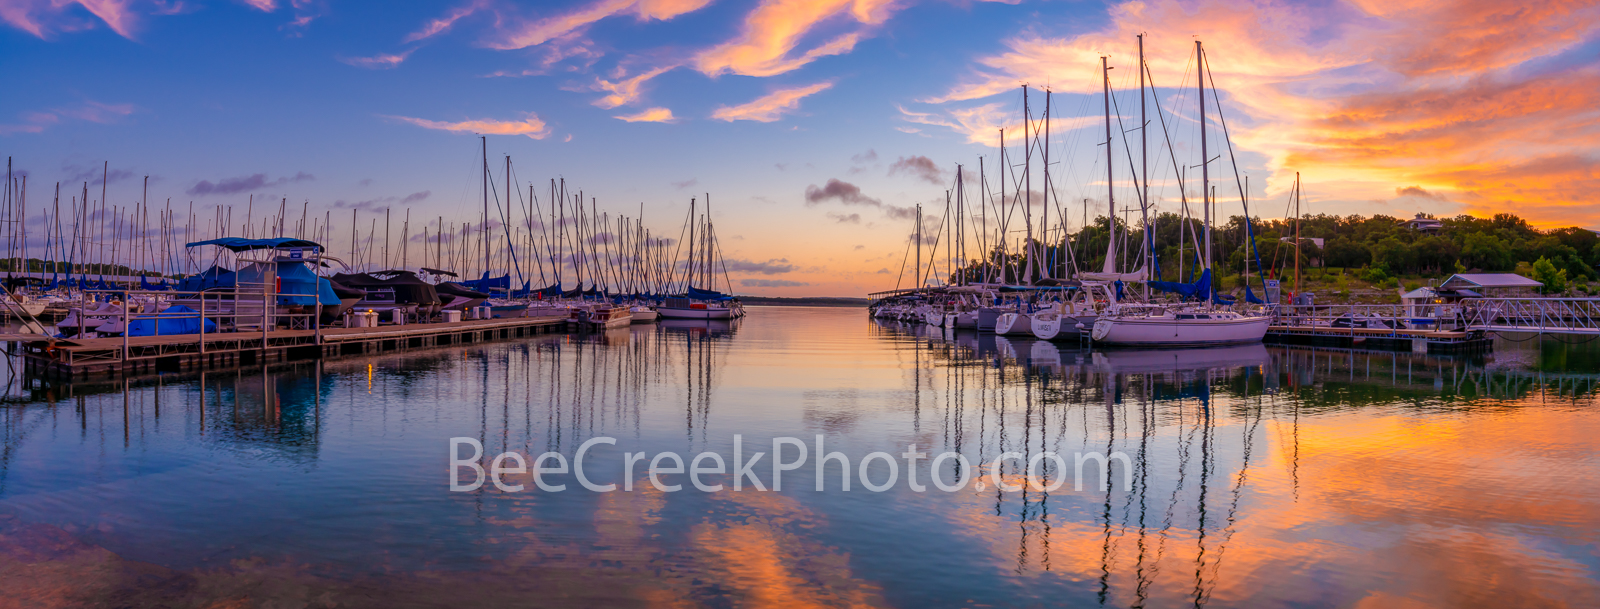 Lake Travis Sunrise Pano  - We capture the sunrise over this marina on Lake Travis outside of Austin in the Texas hill country...